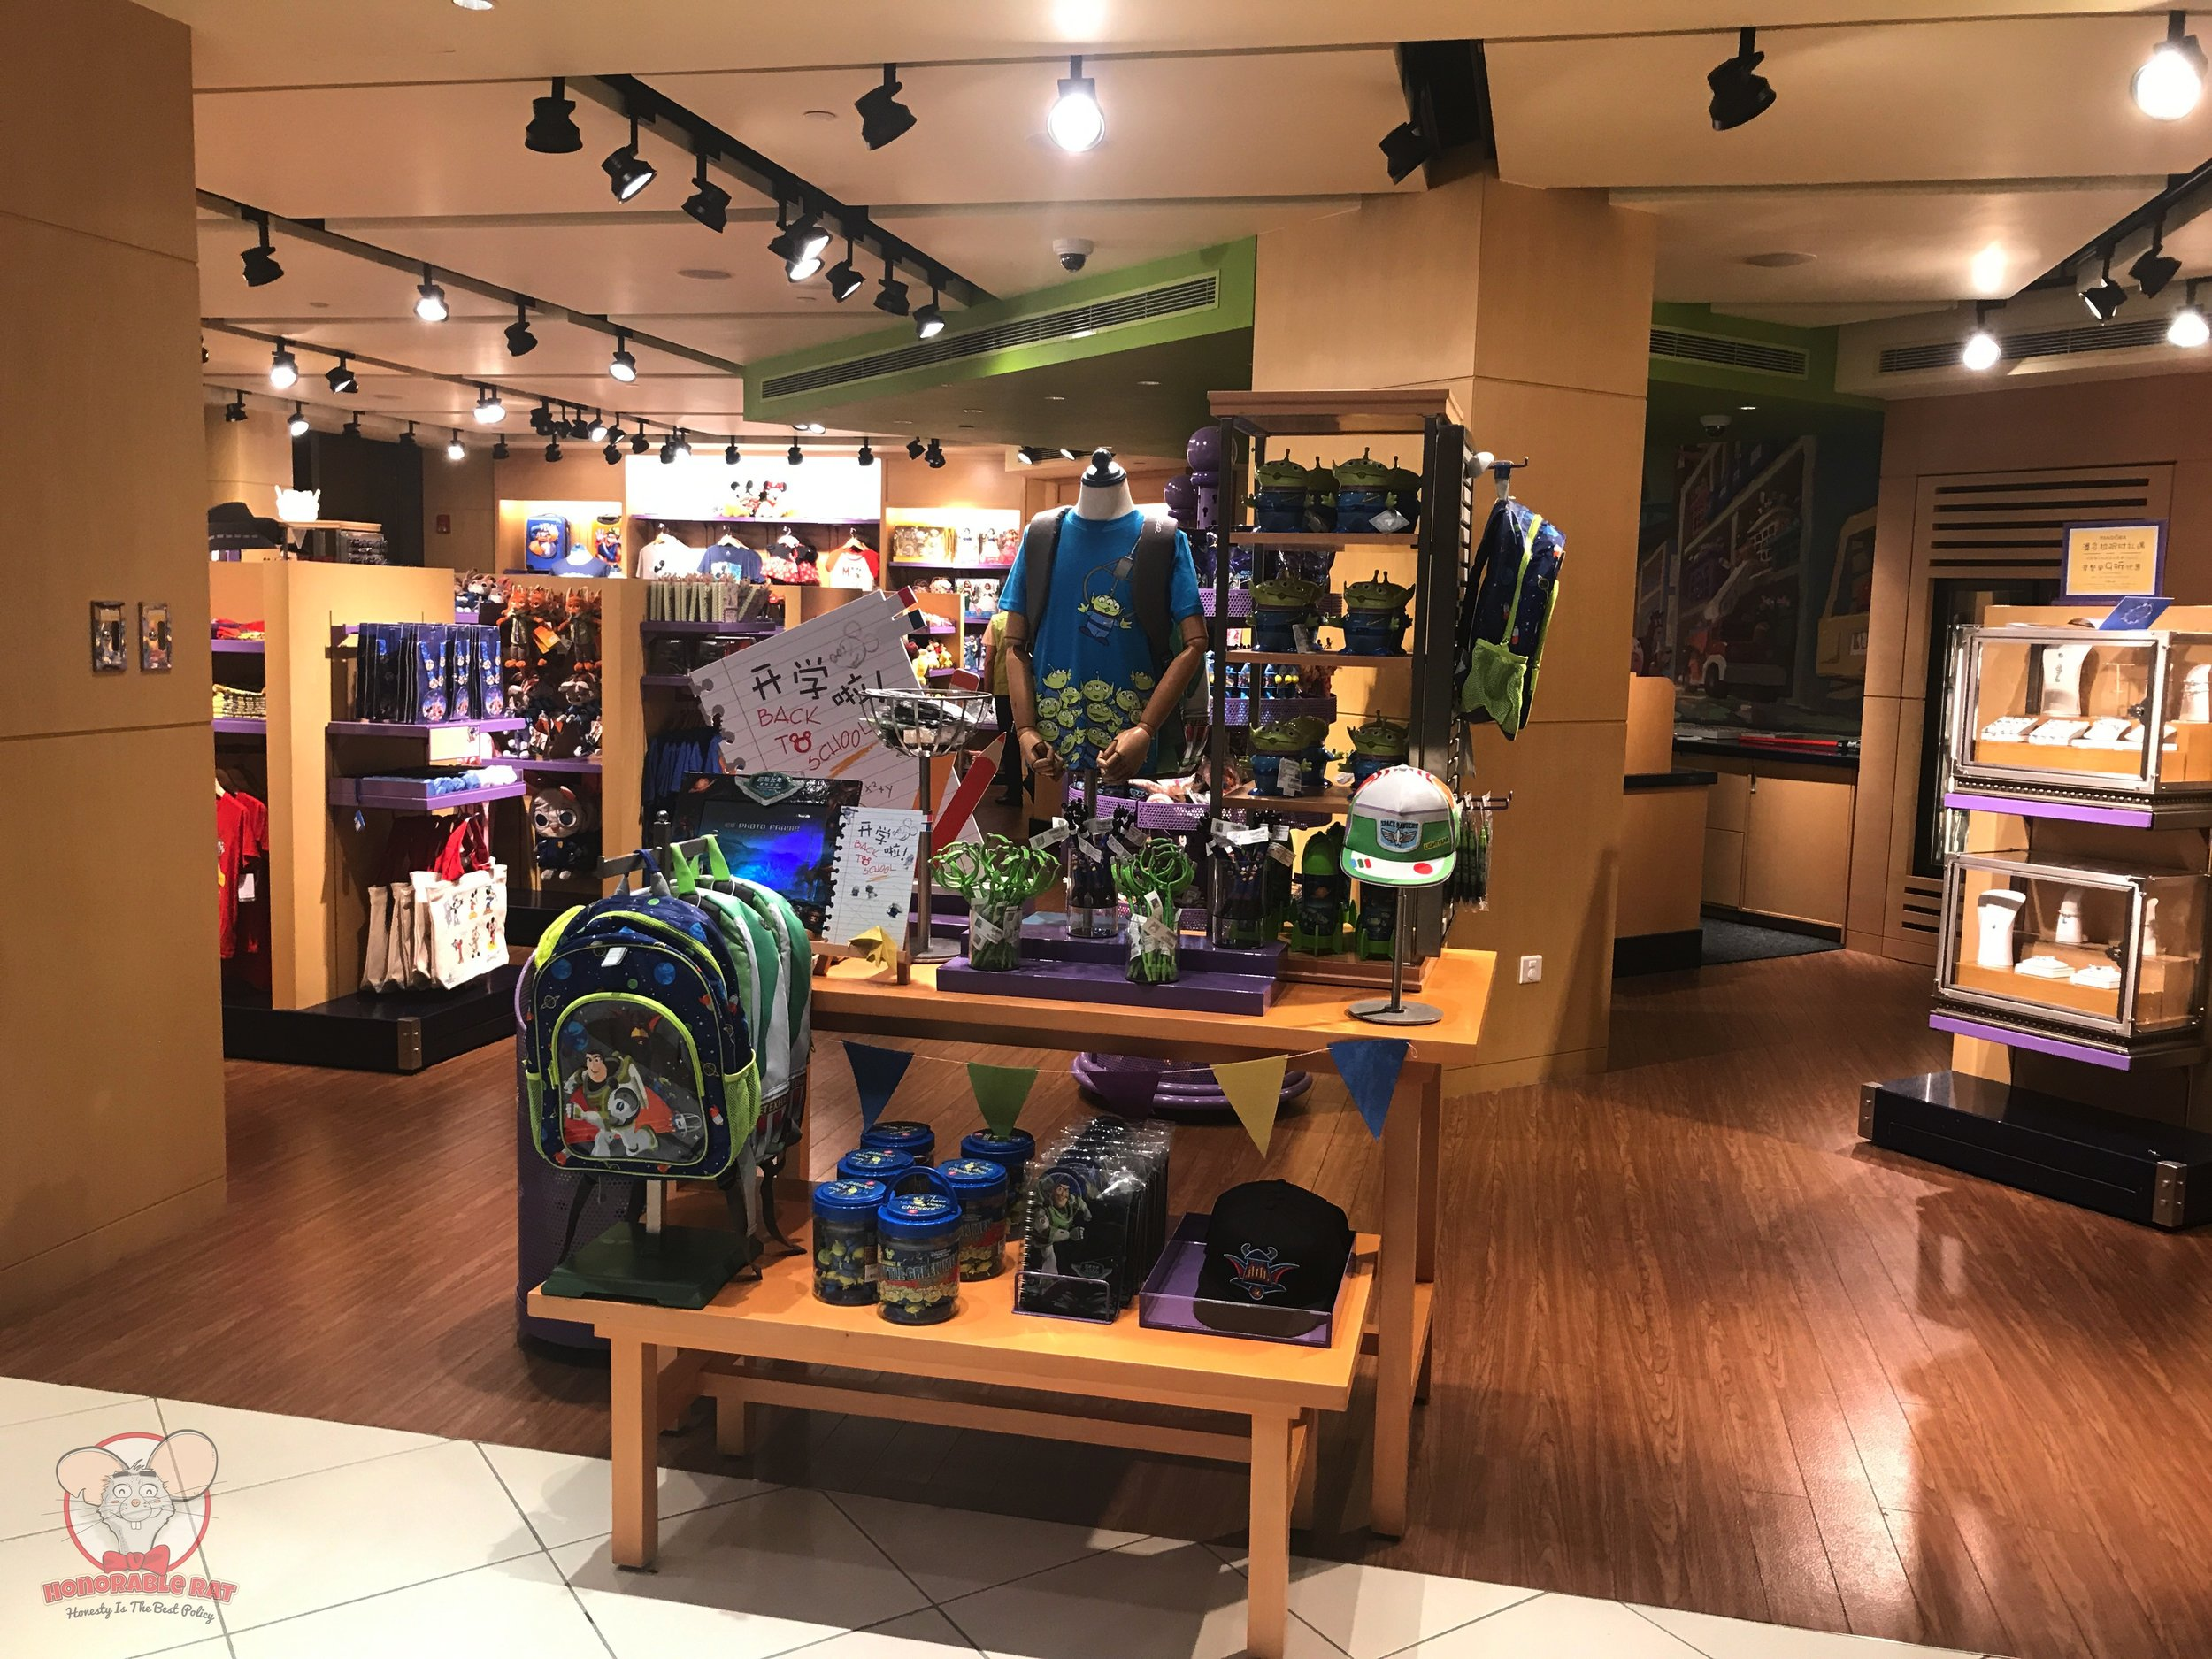 Loads of Toy Story souvenirs